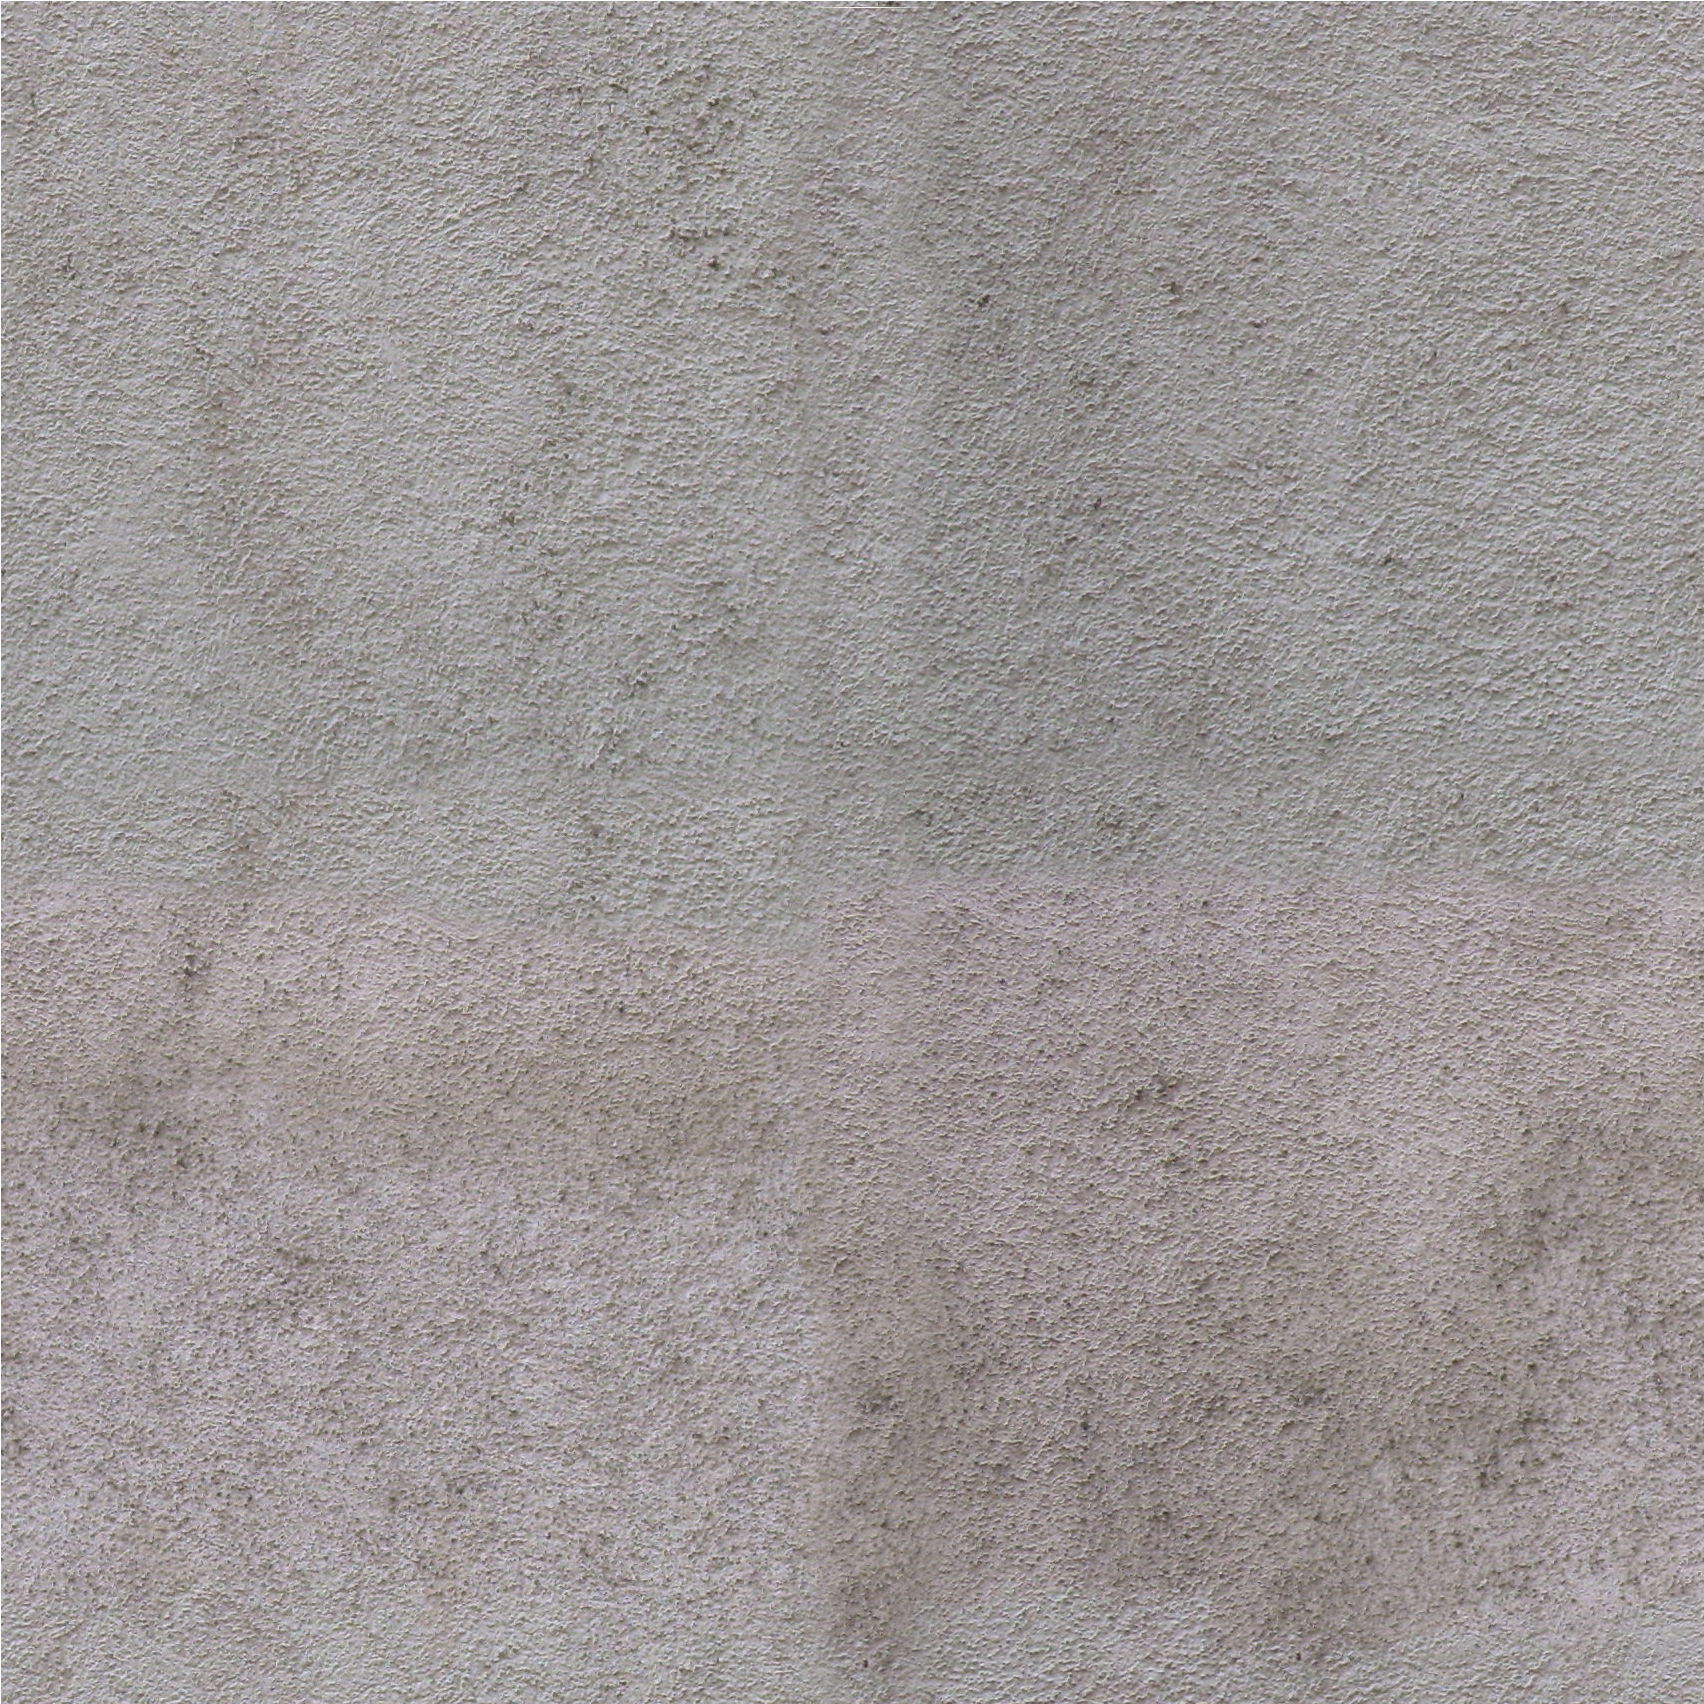 Textur wall concrete loop